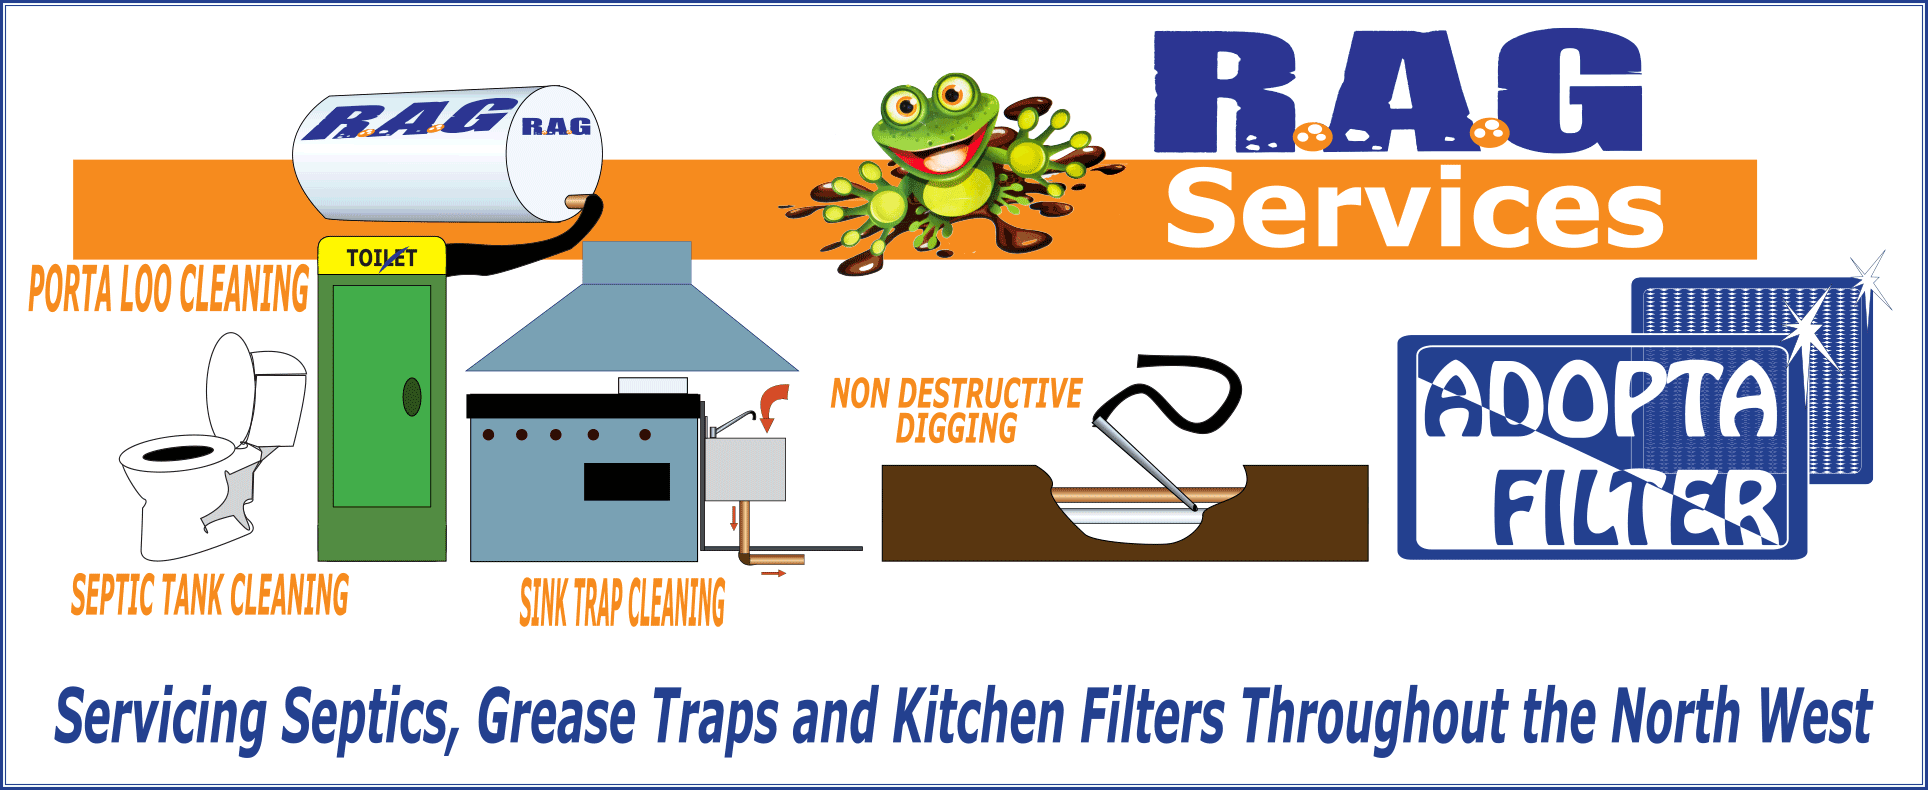 All Rags Services